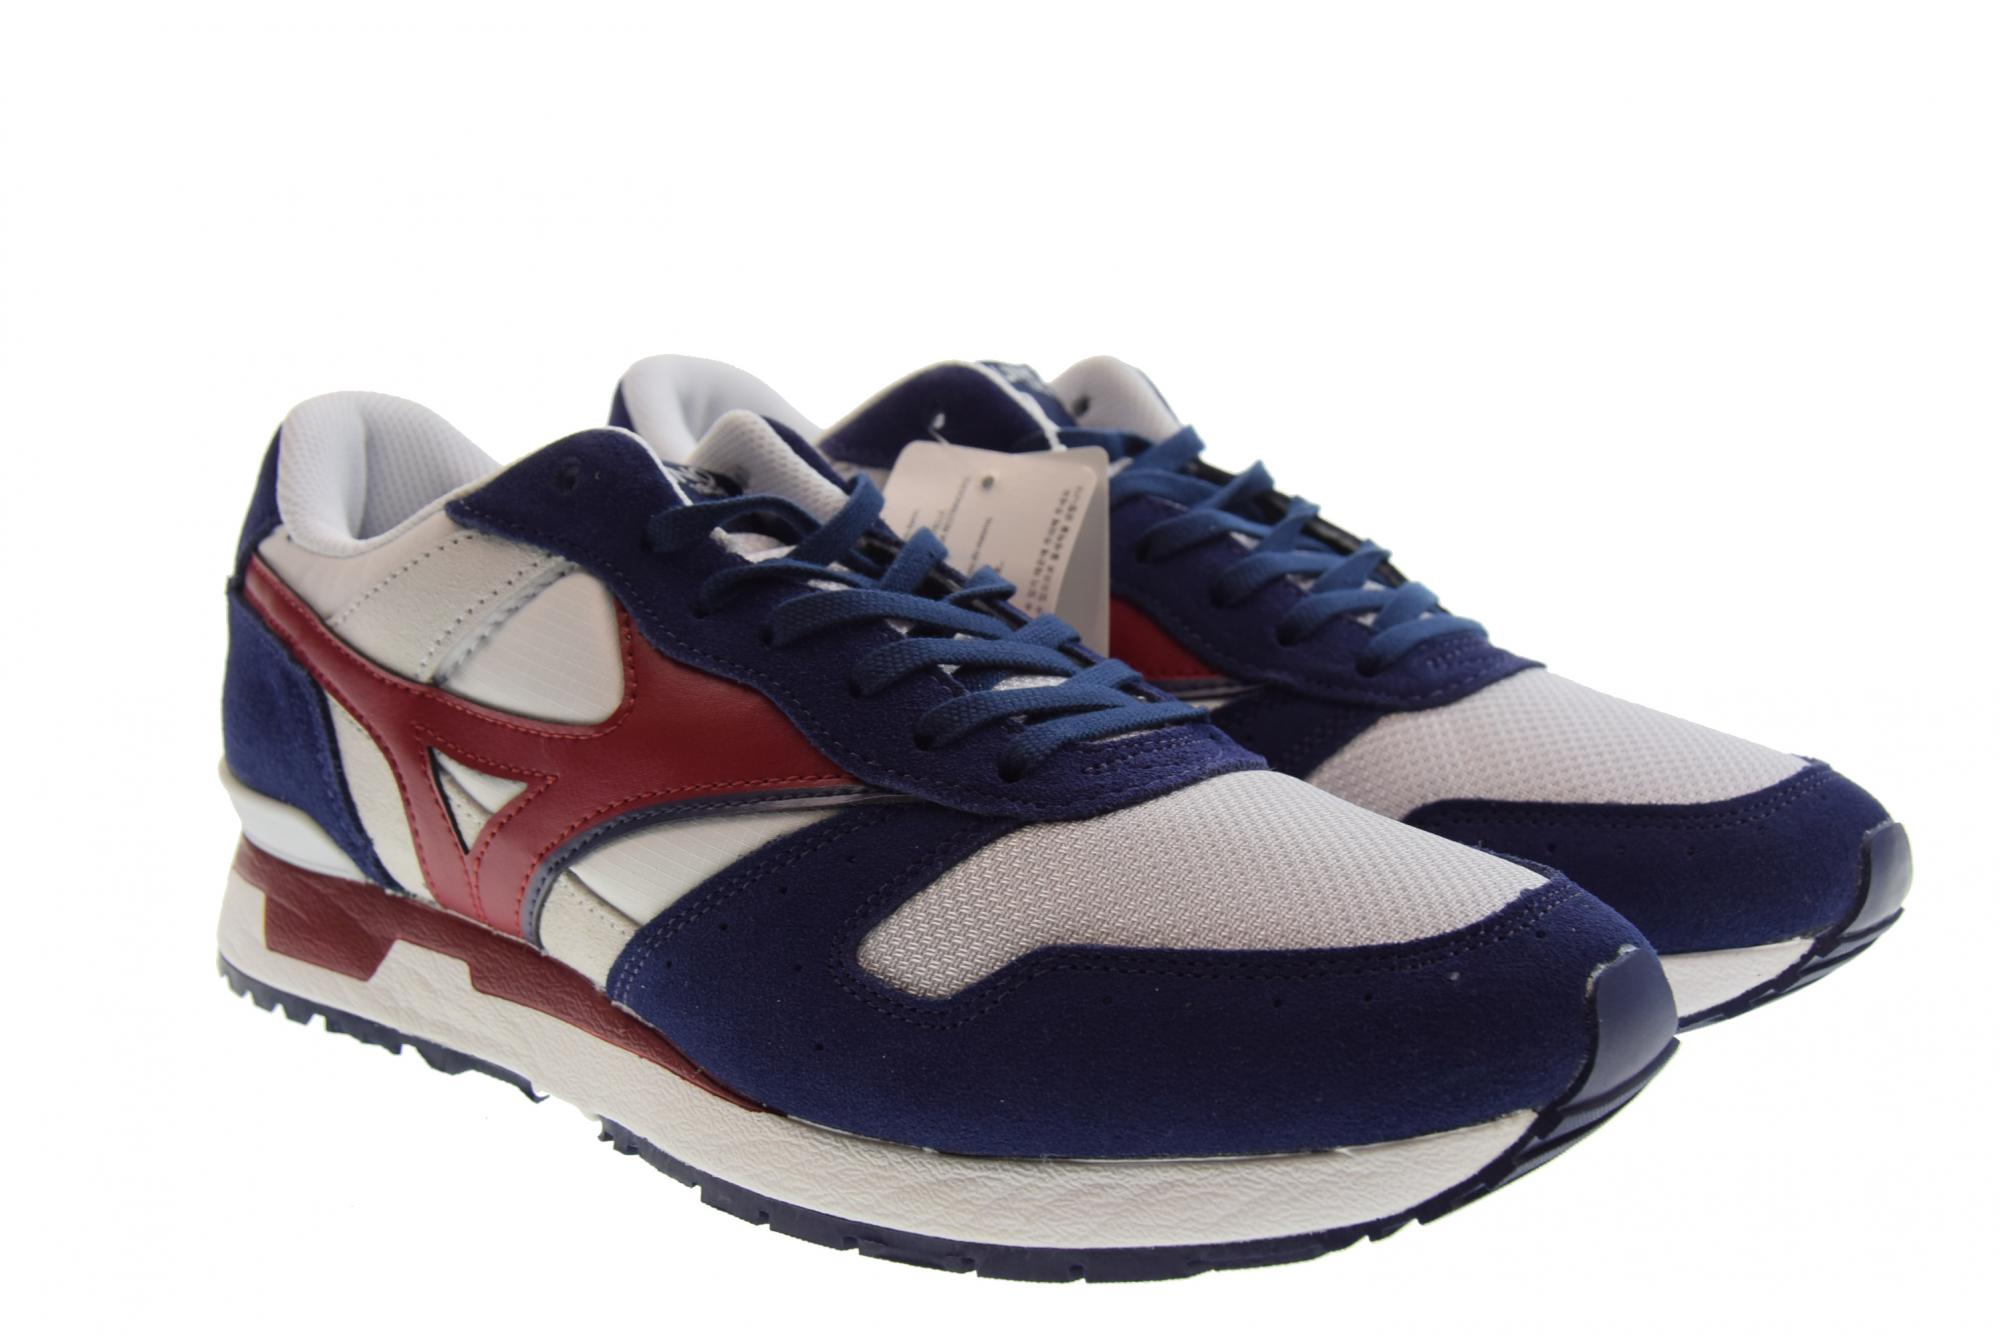 info for 27475 f4f6c Details about Mizuno 1906 P19u shoes men low sneakers D1GA190862 MIZUNO GV87